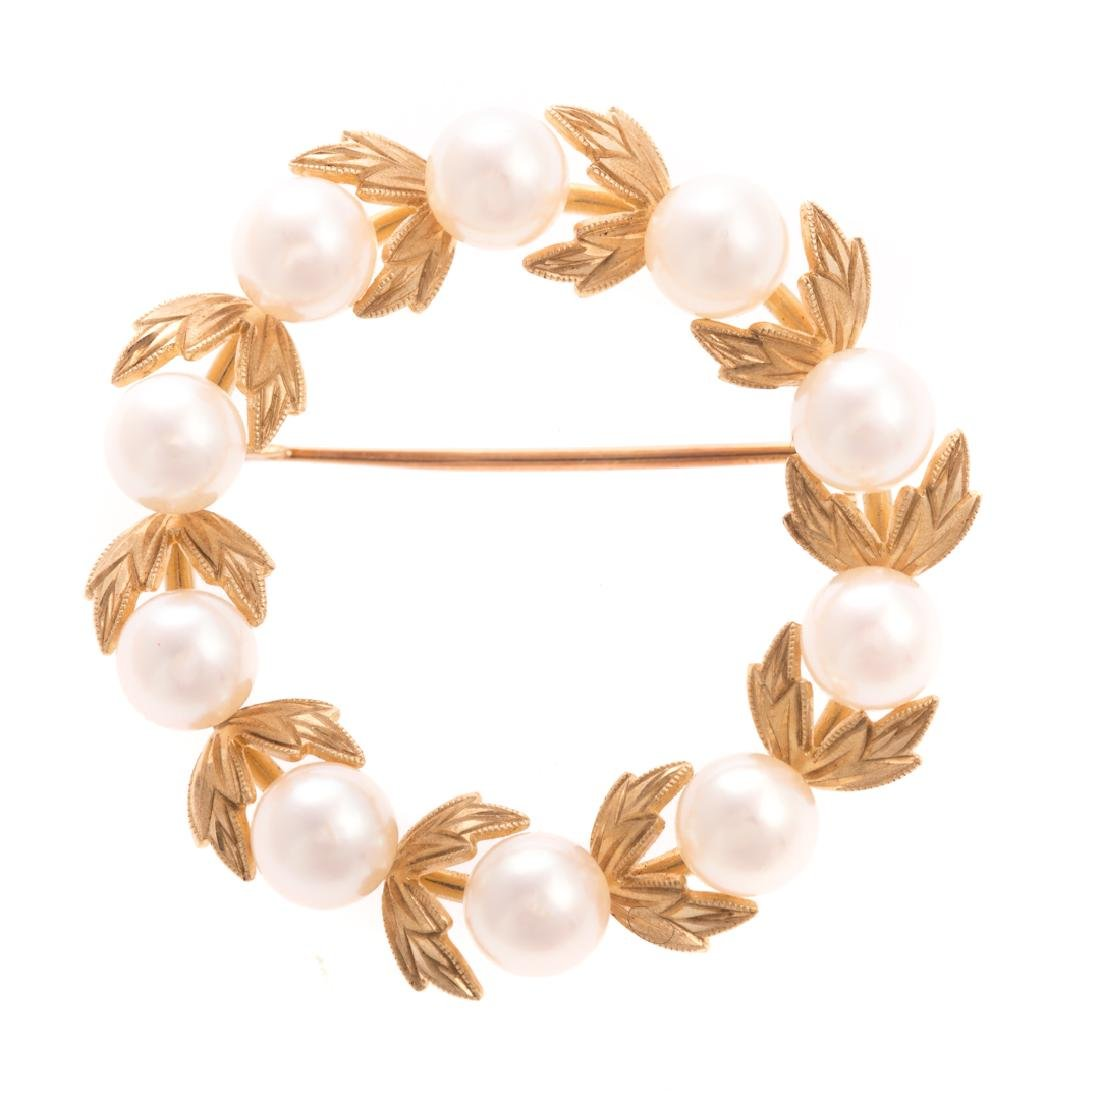 A Lady's 14K Open Circle Leaf Pearl Brooch